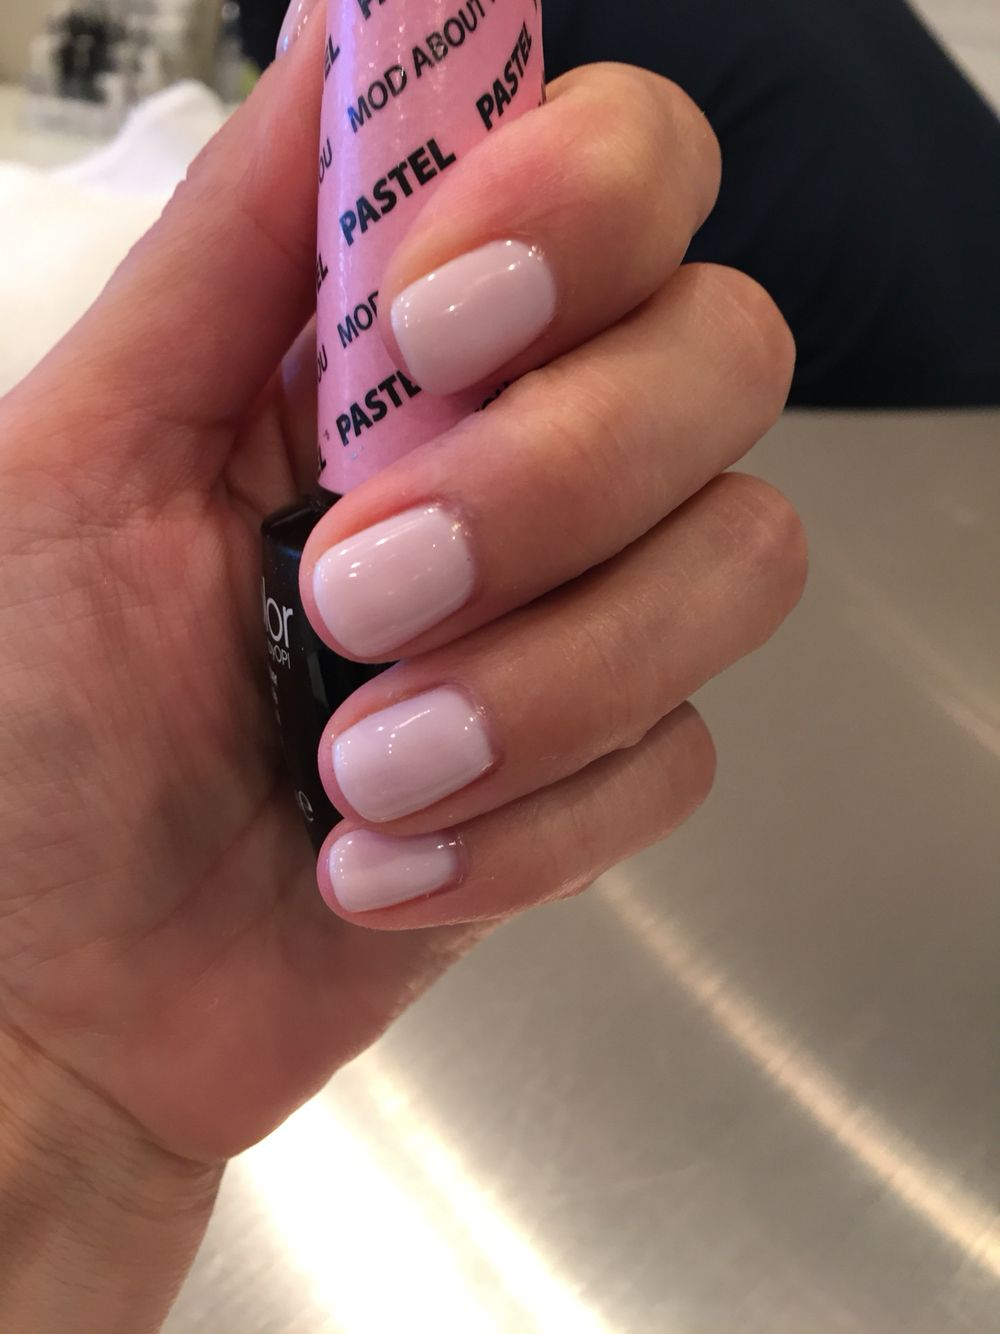 Opi shellac, #bestlightpink polish, #bachelorettenails, mod about you pastel